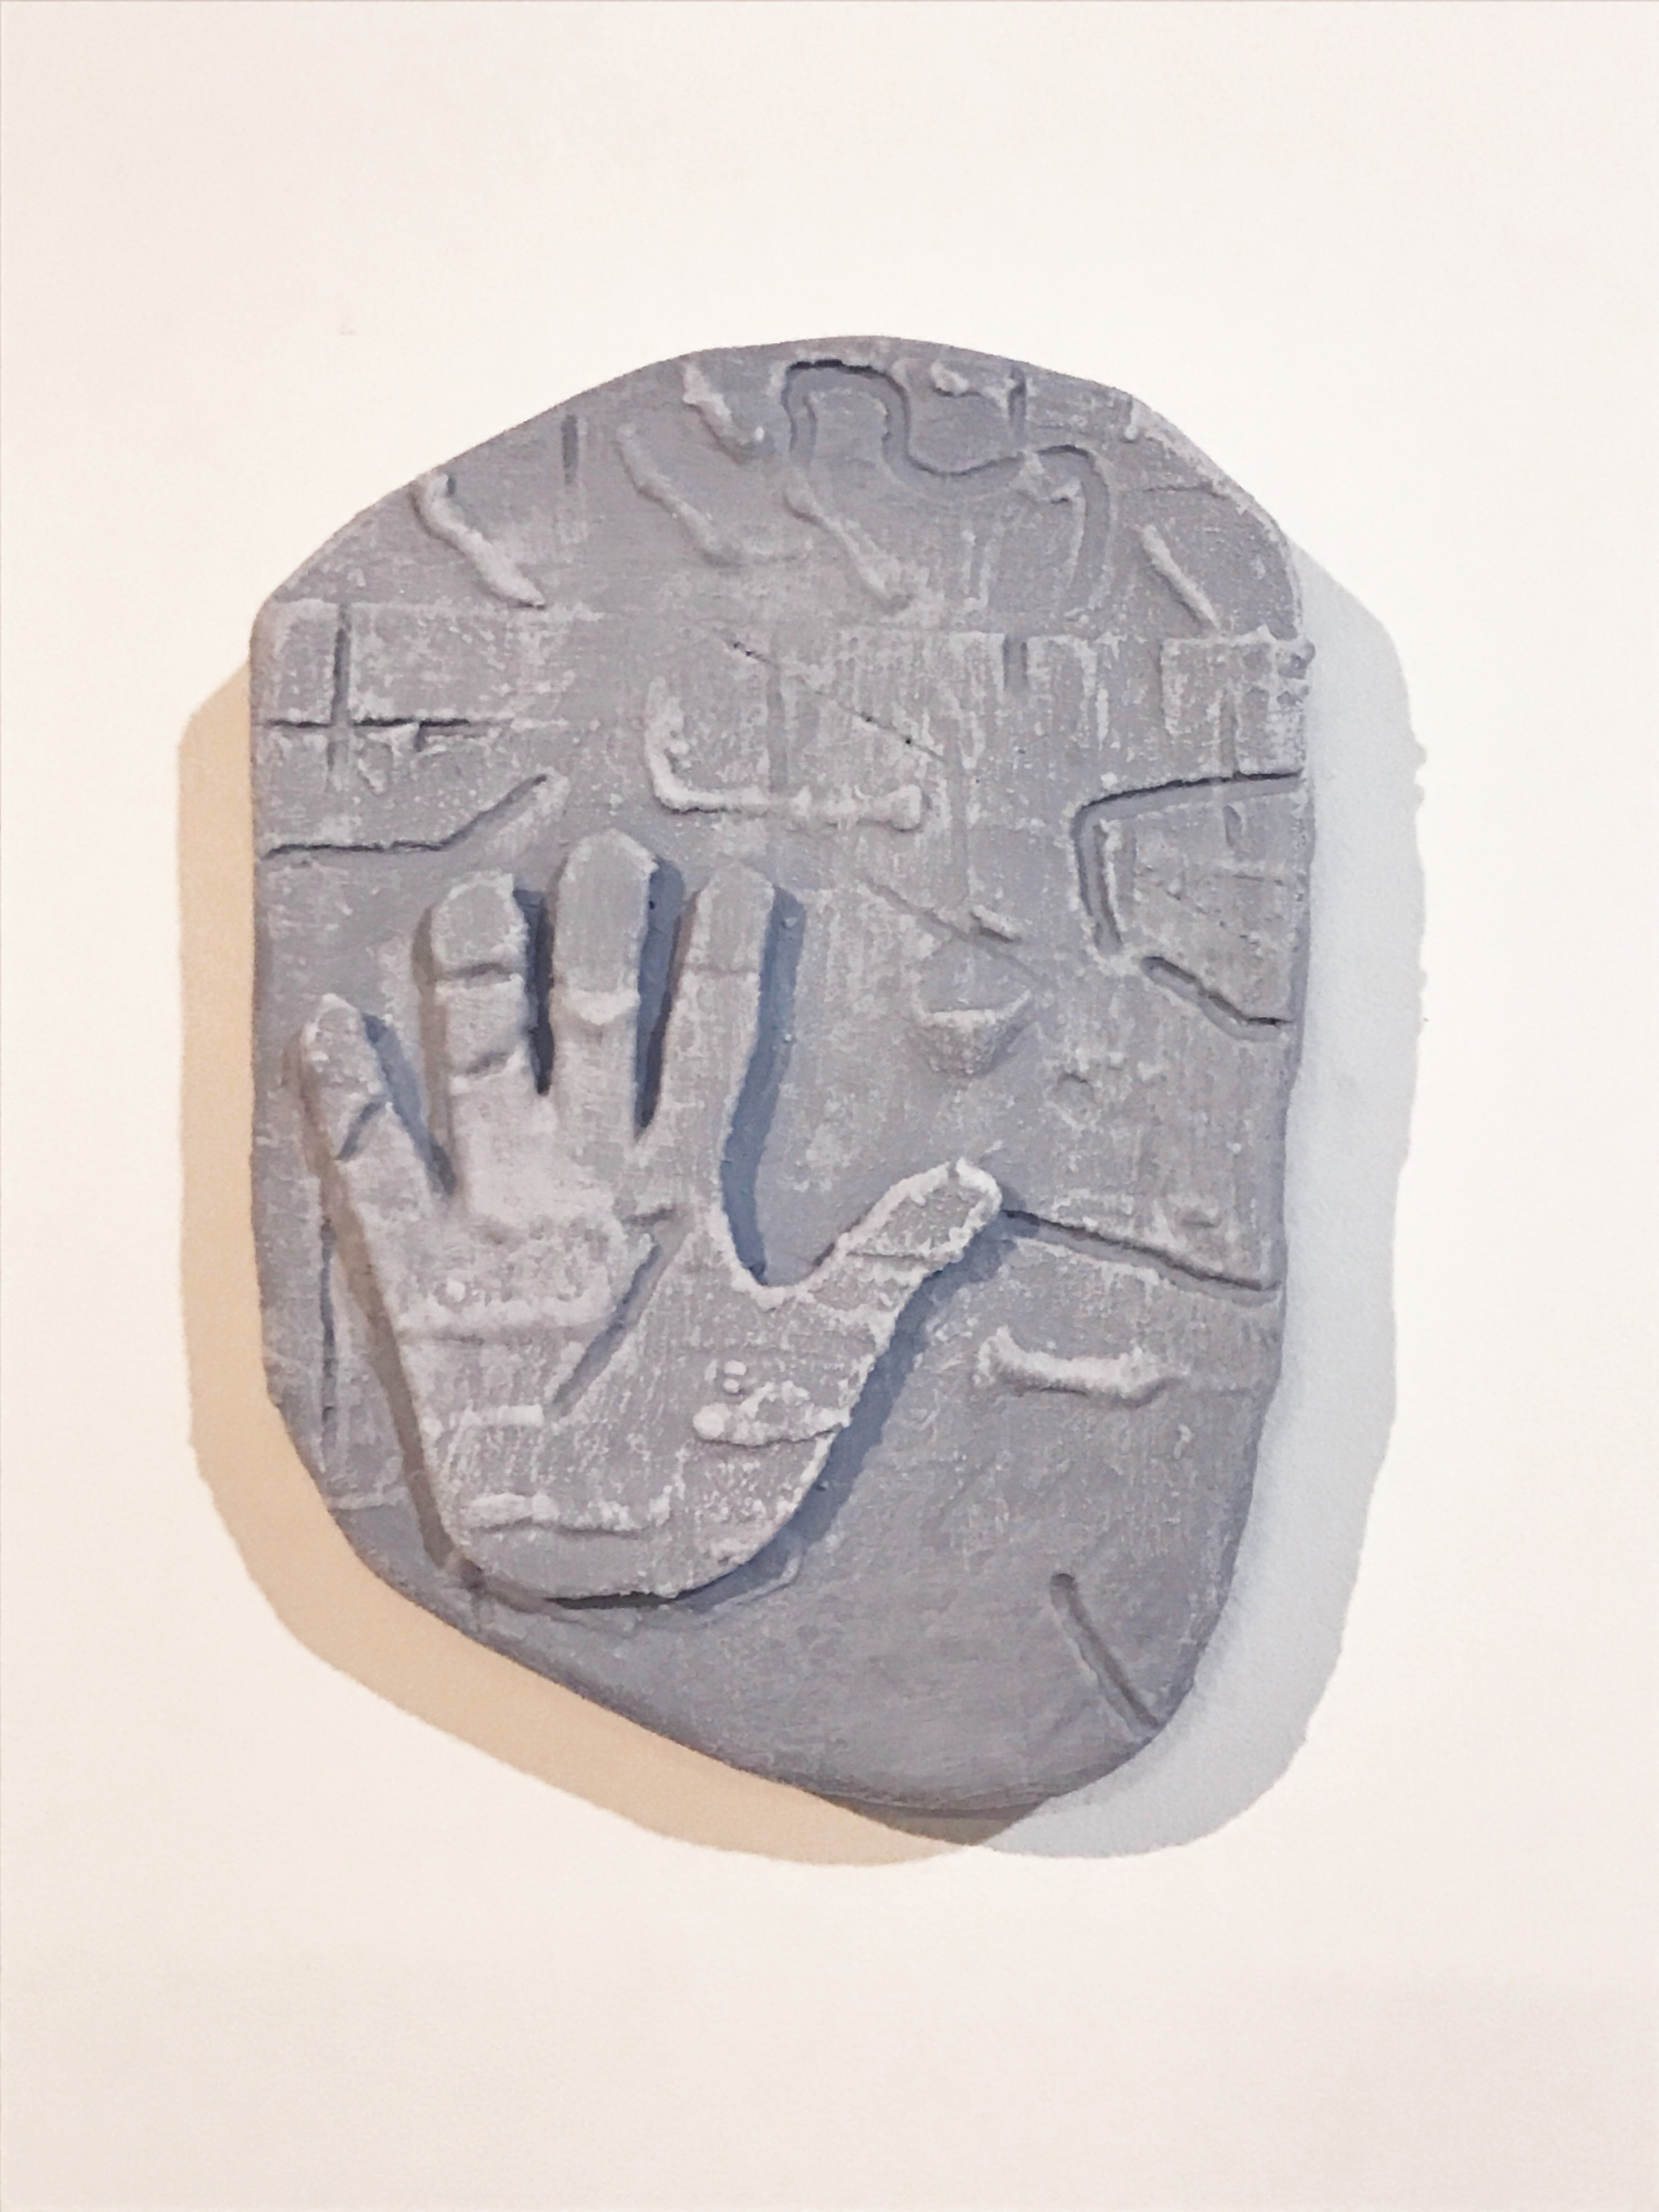 Don Edler  Burial Stone 2 , 2017 plywood, plaster, liquid nails, latex, surf wax 14 x 10 in.